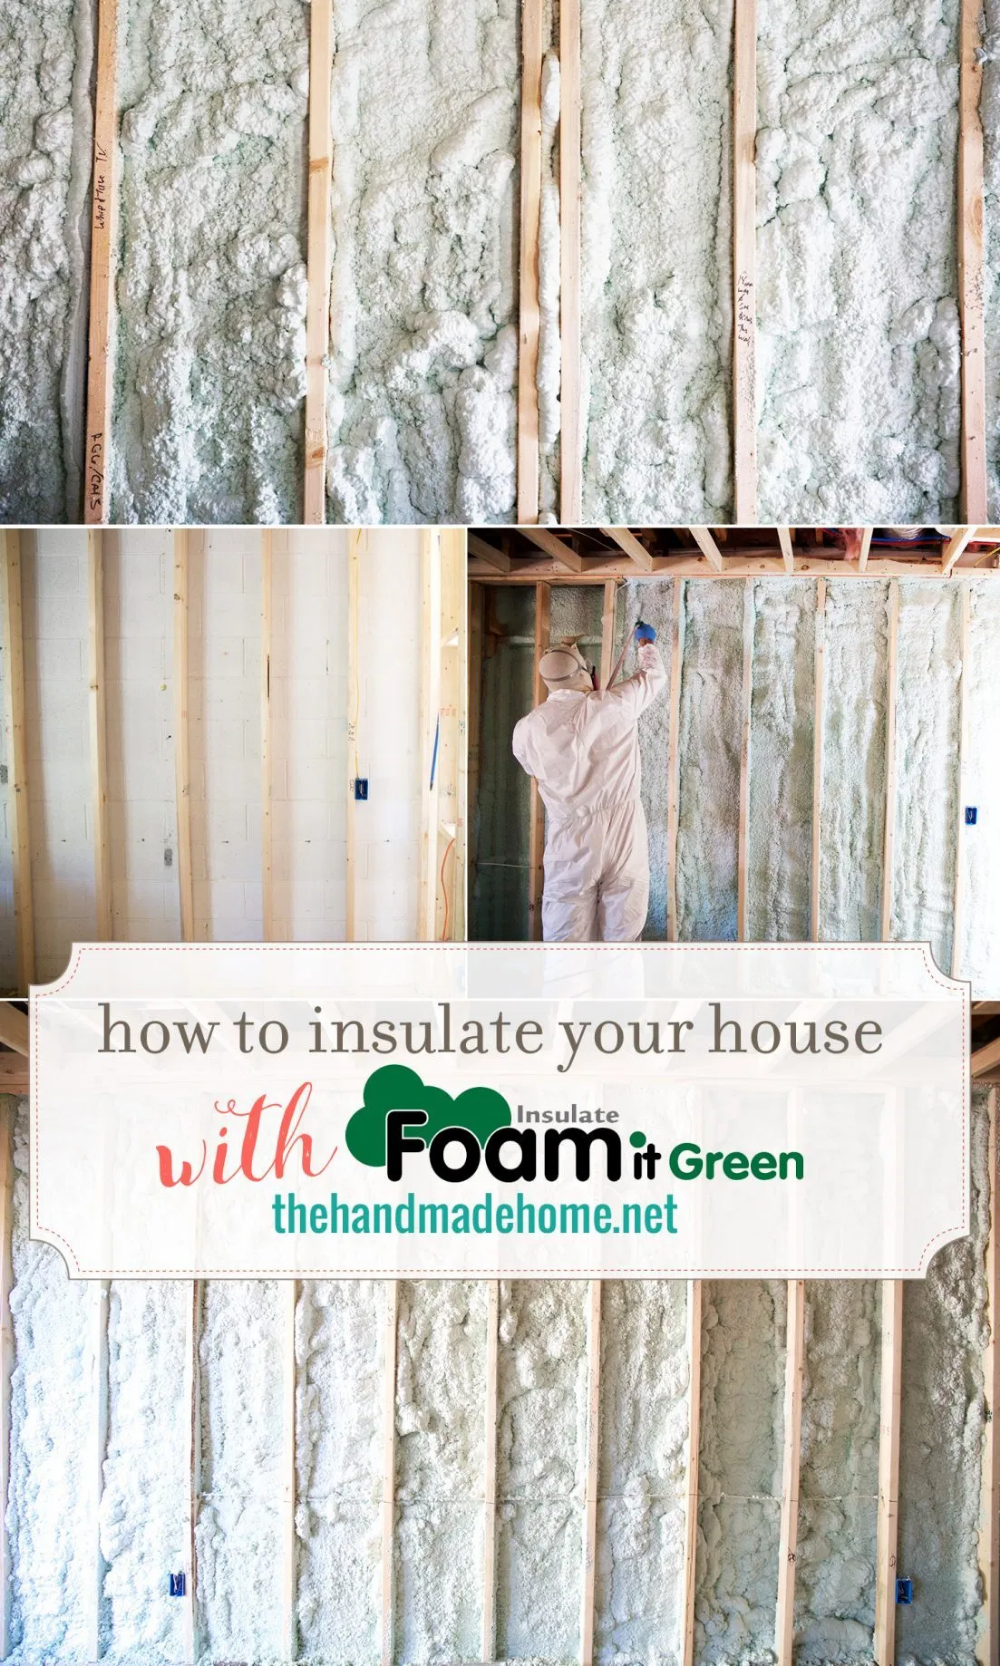 How To Use Spray Insulation - DIY Foam it Green in 2020 ...